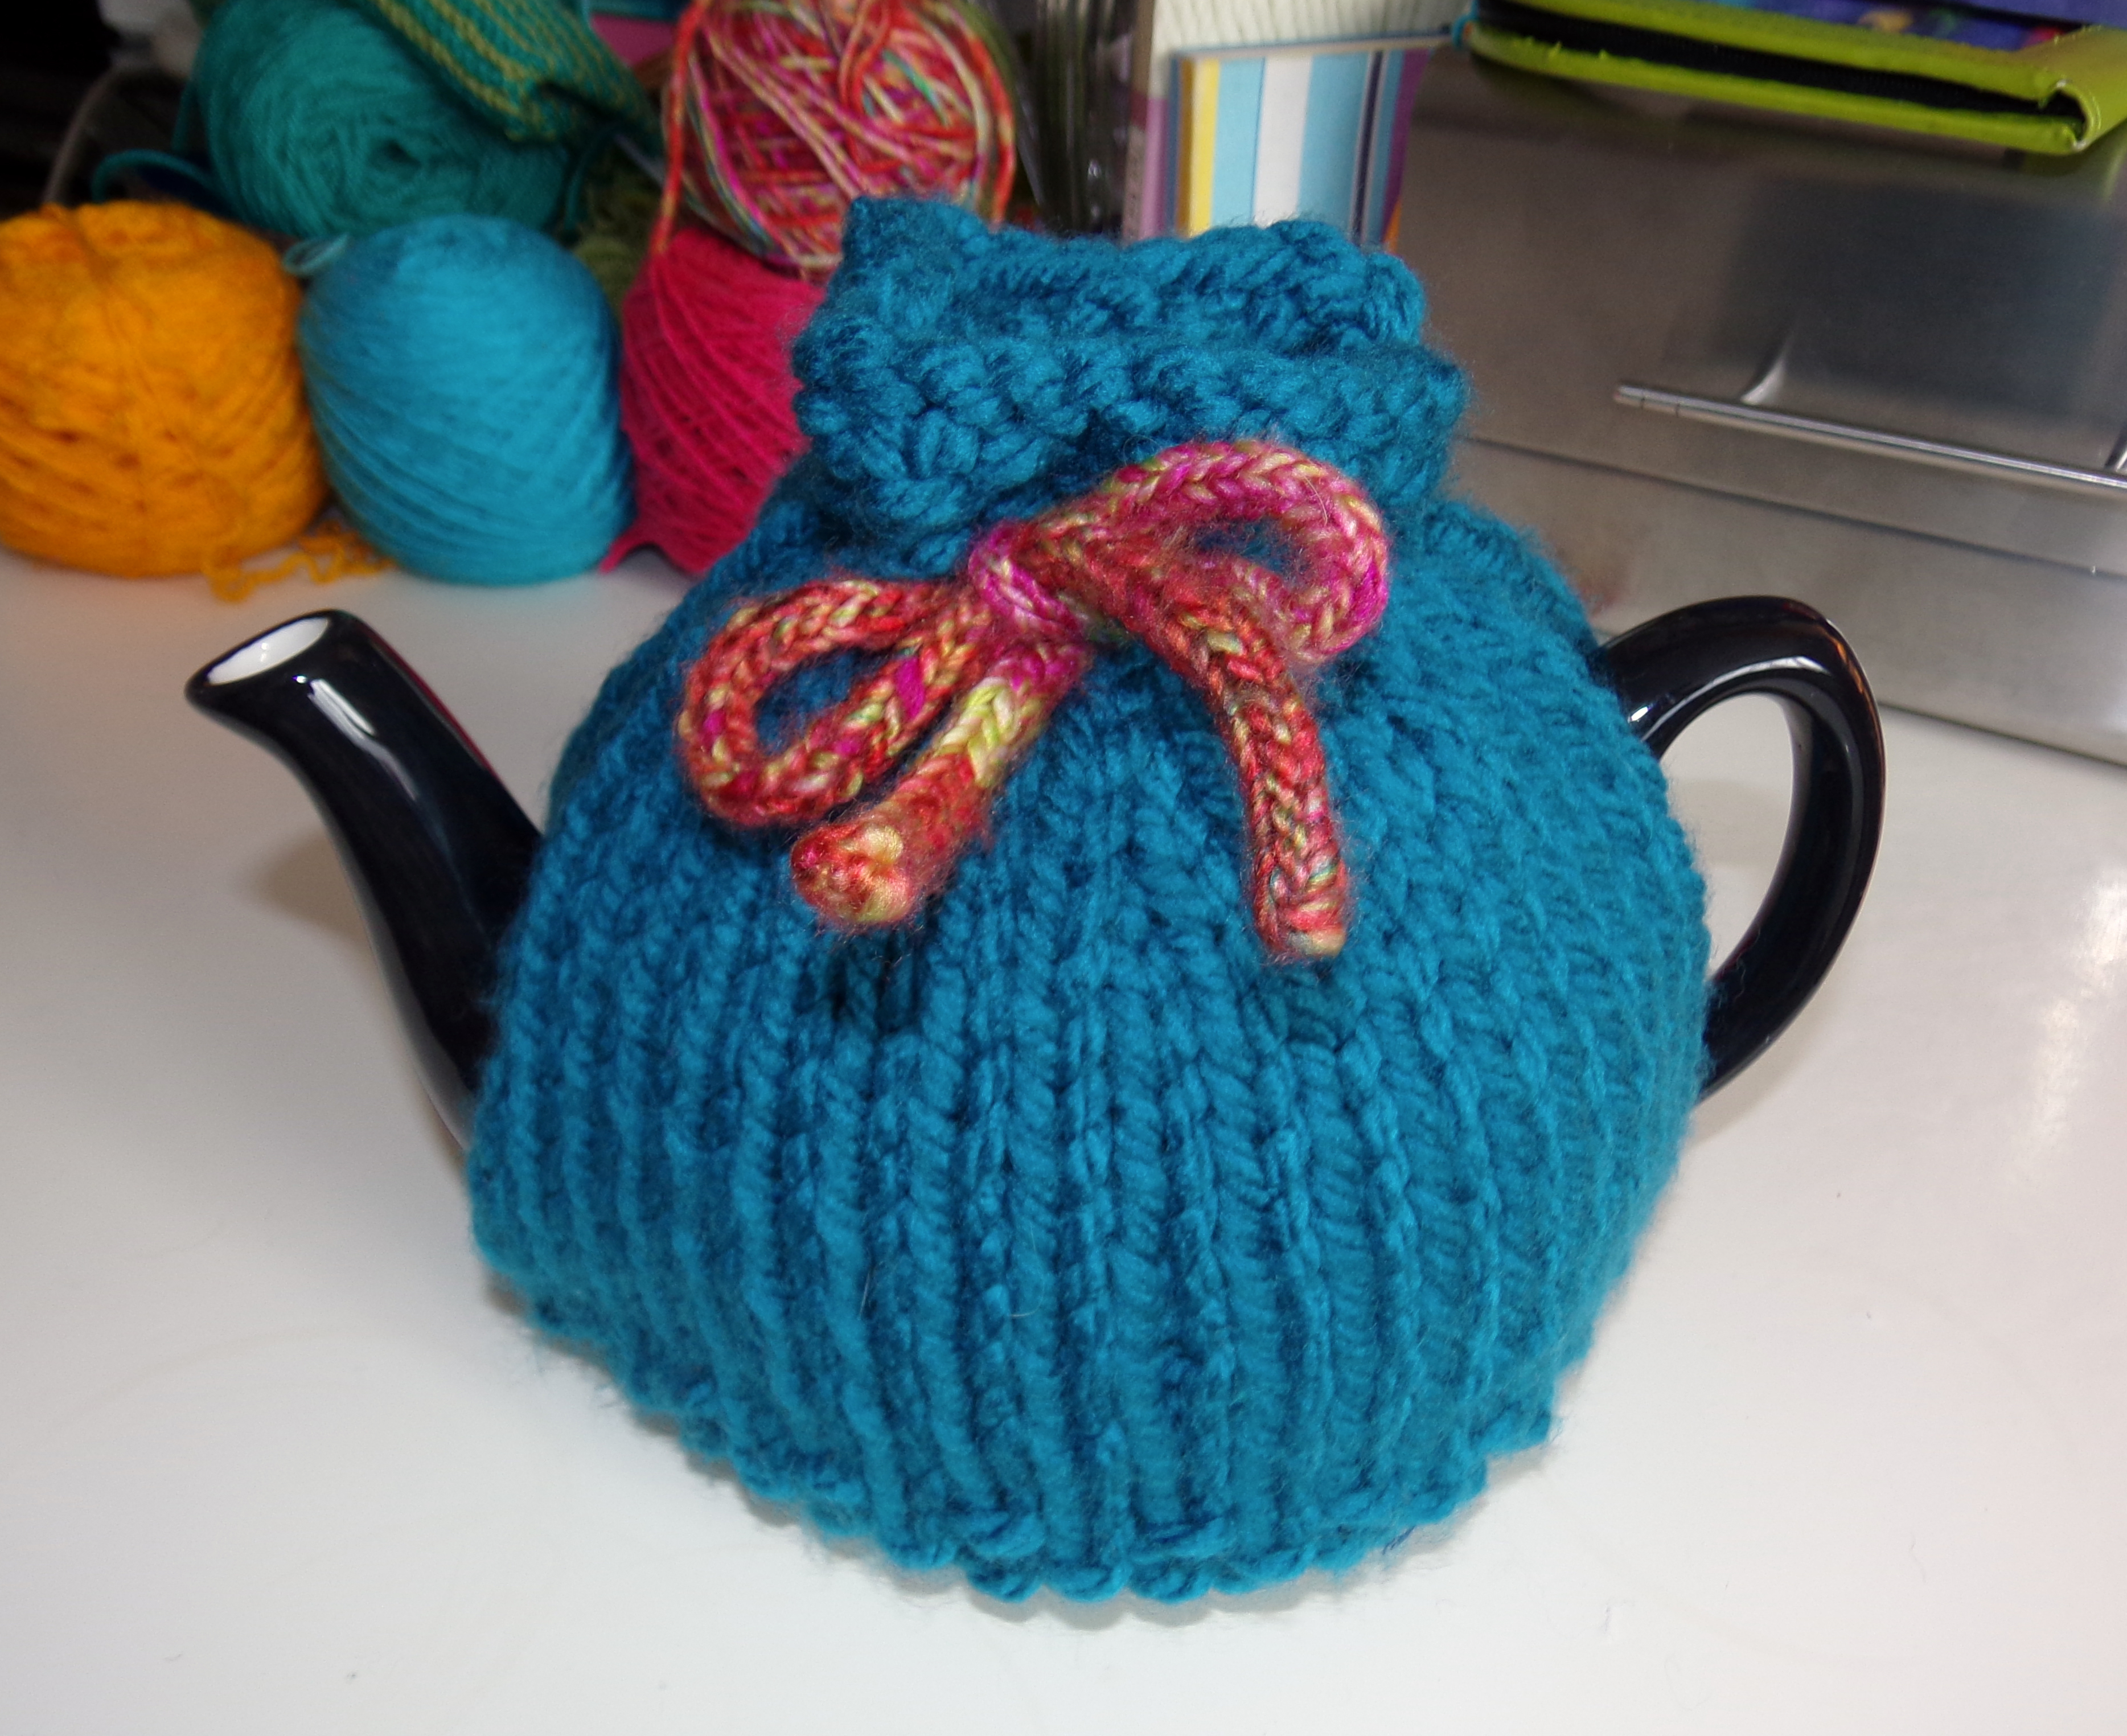 Tea Cosy Knitting Patterns Easy Three Free Tea Cosy Patterns Reviewed Or Why Tea Pots Are Better